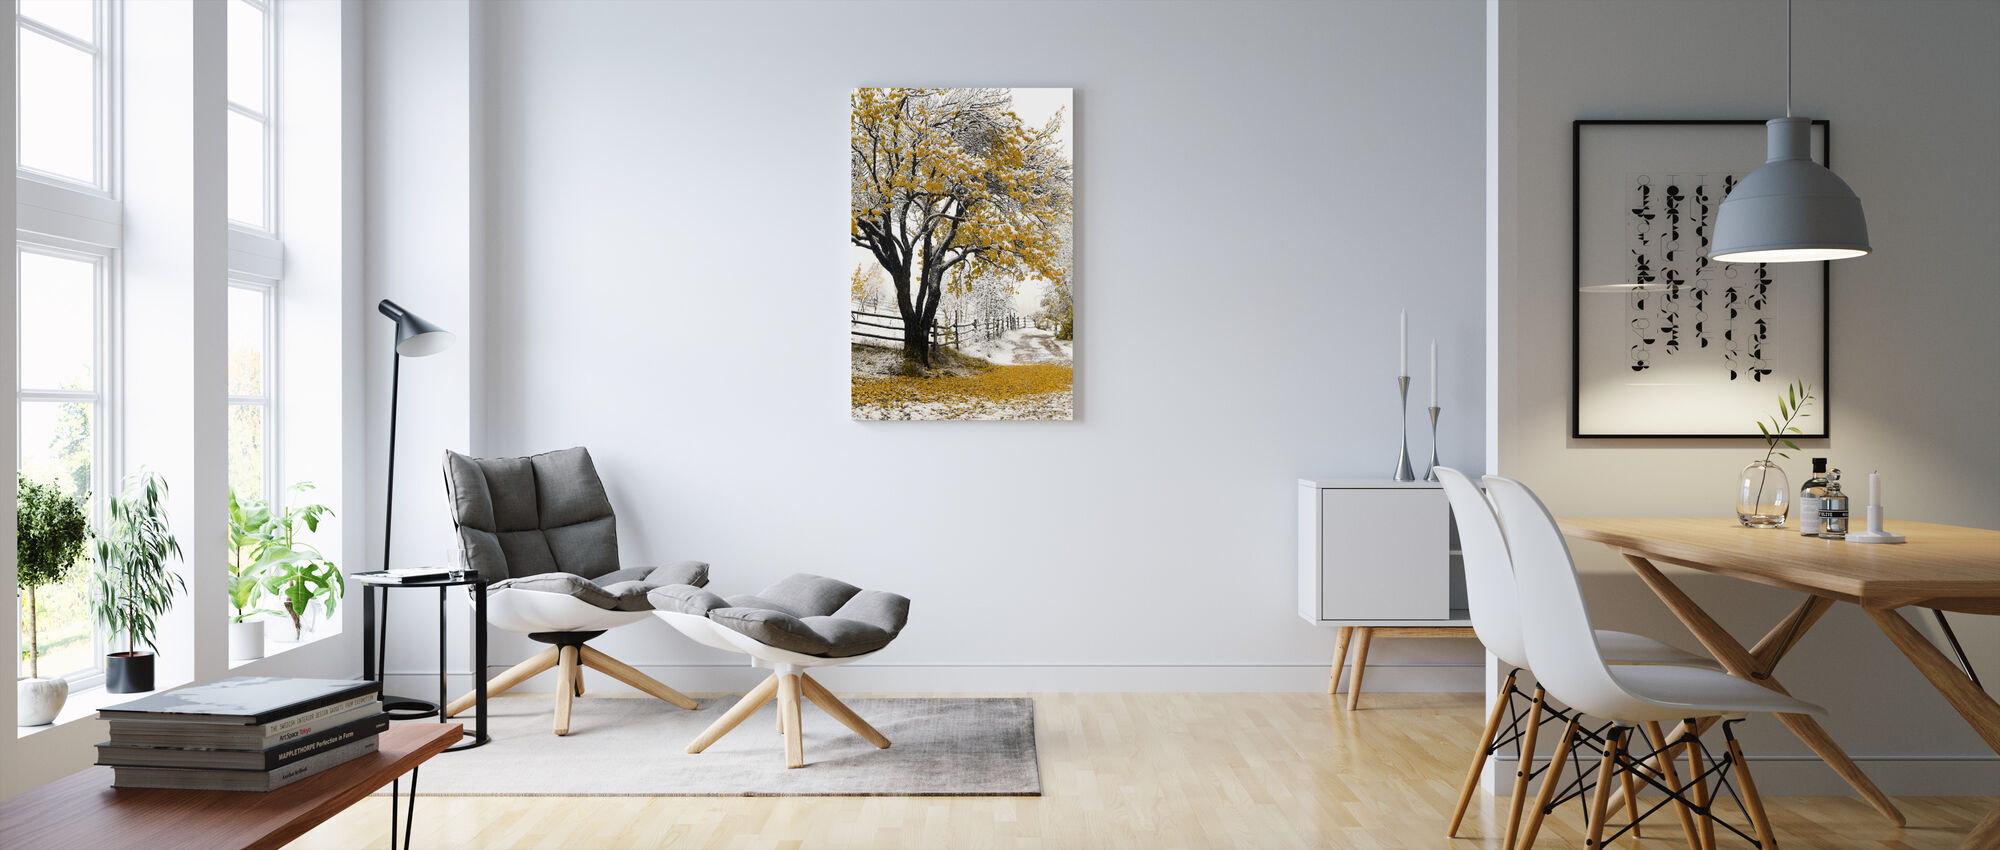 Apricot Tree - Canvas print - Living Room